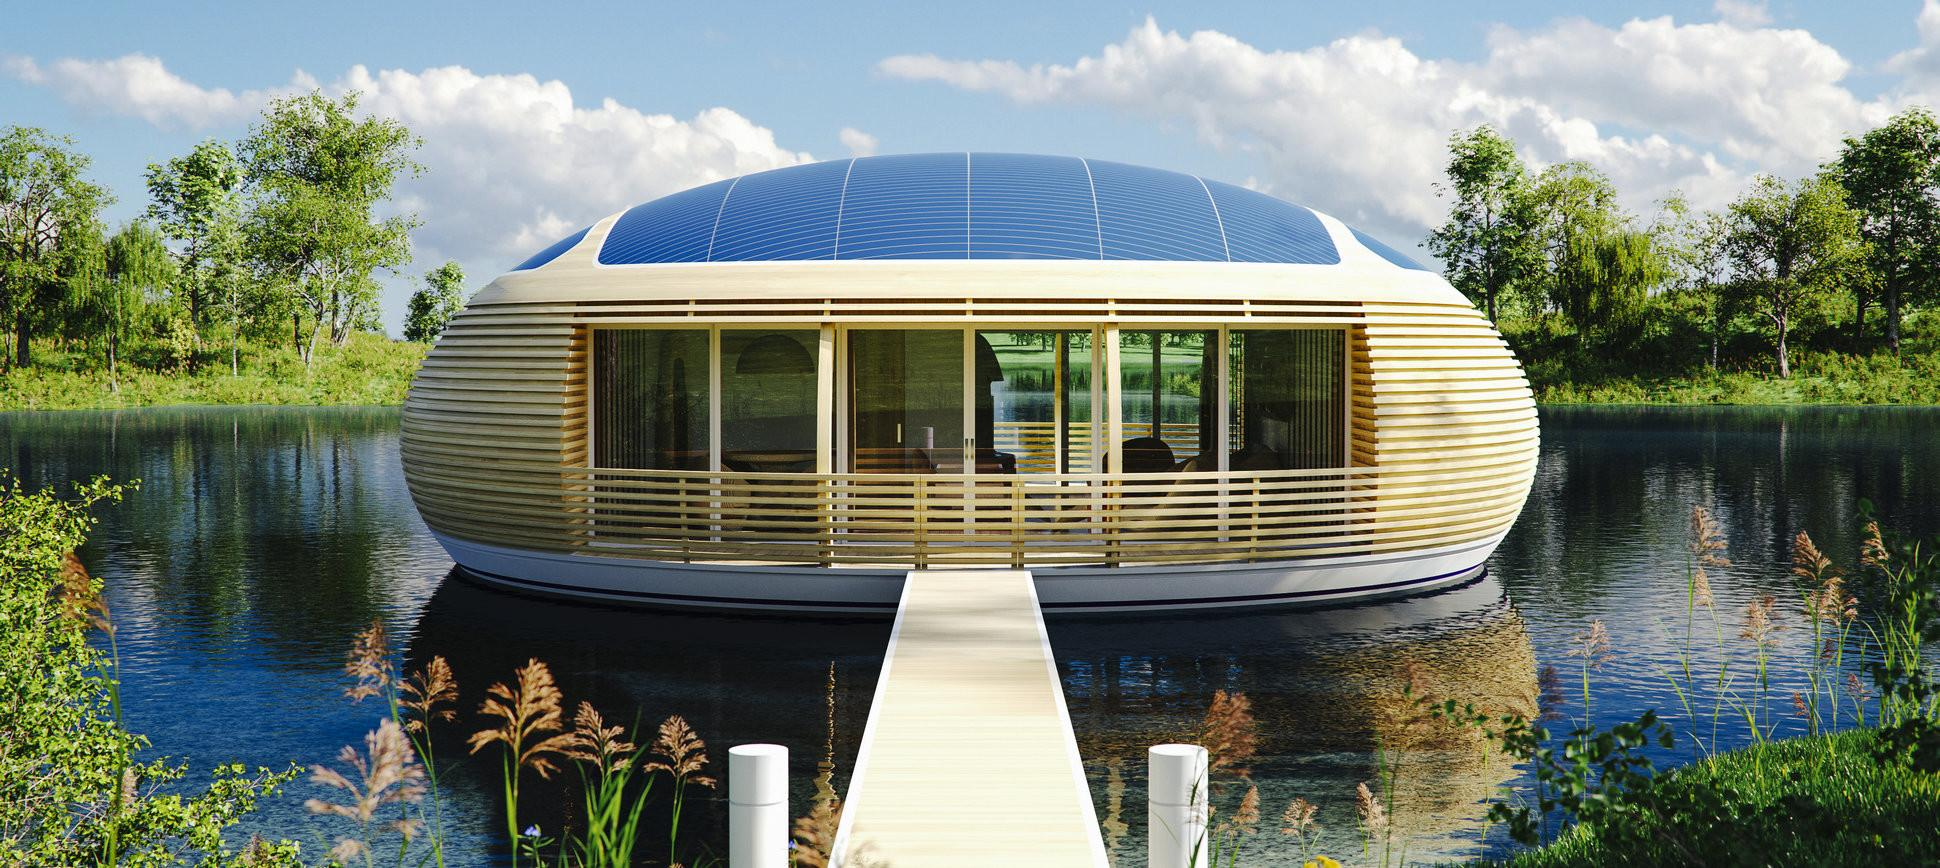 Waternest Floating House Eco Friendly Housing